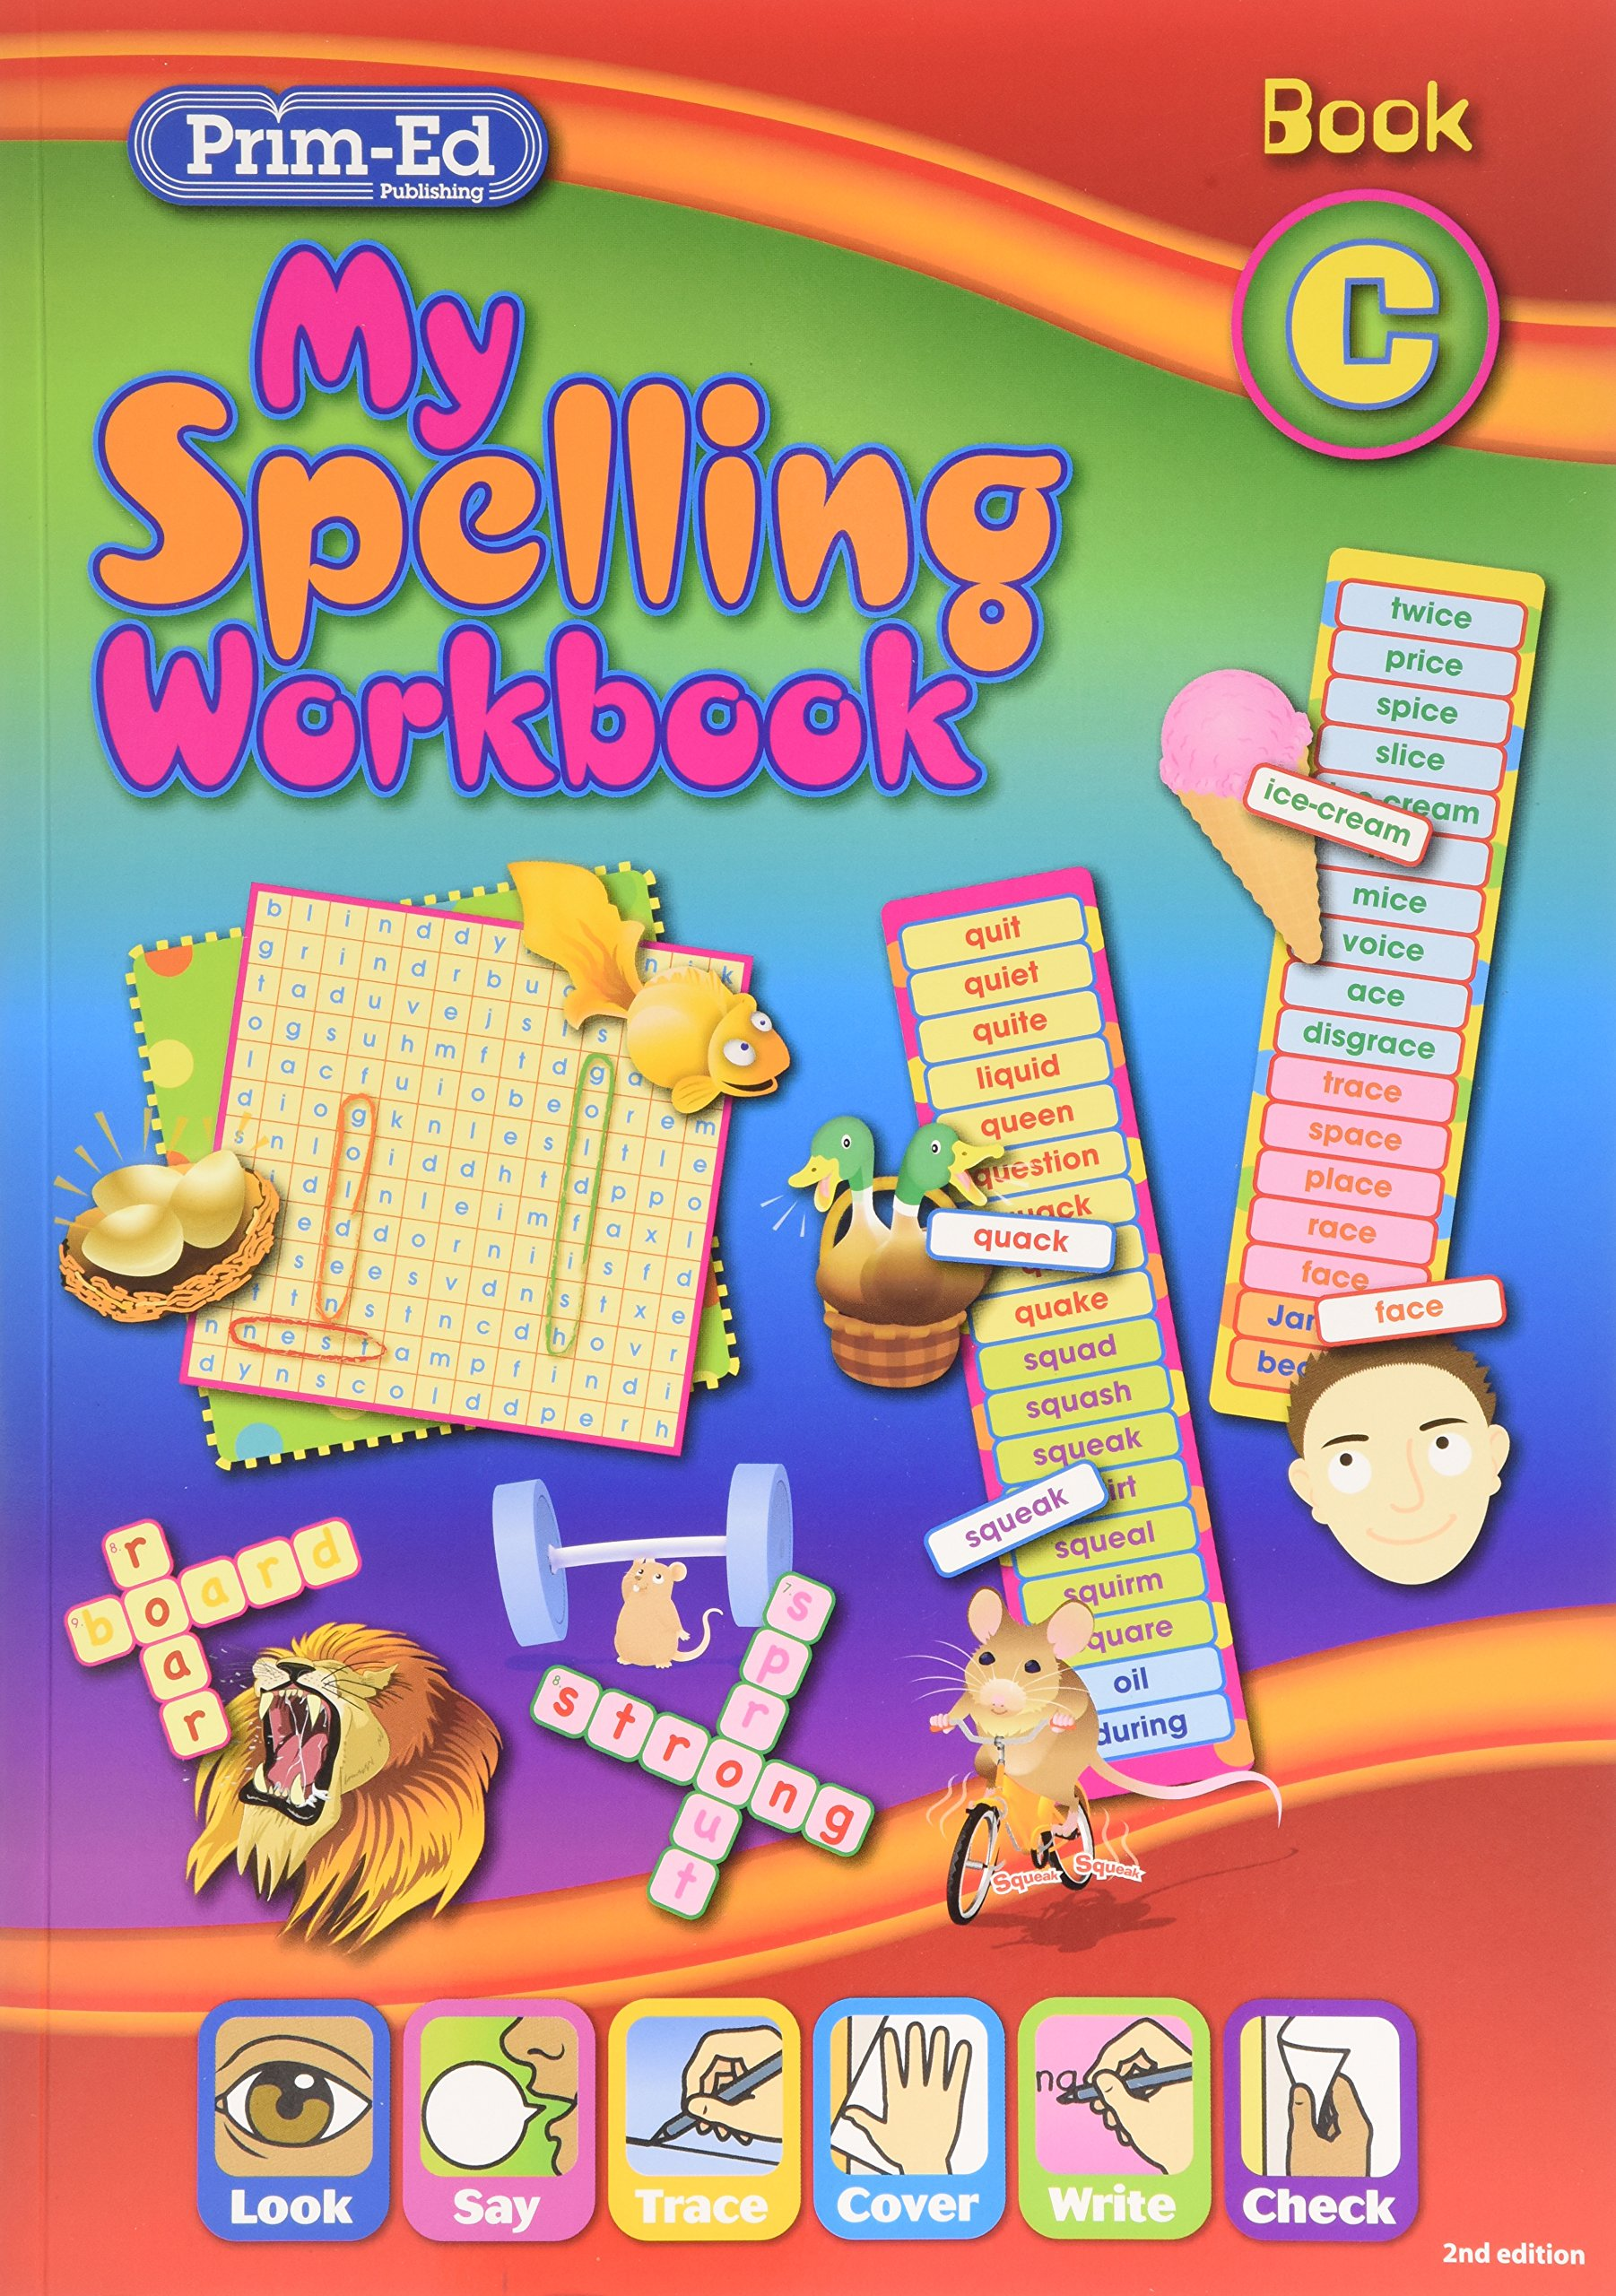 My Spelling Workbook: Book C